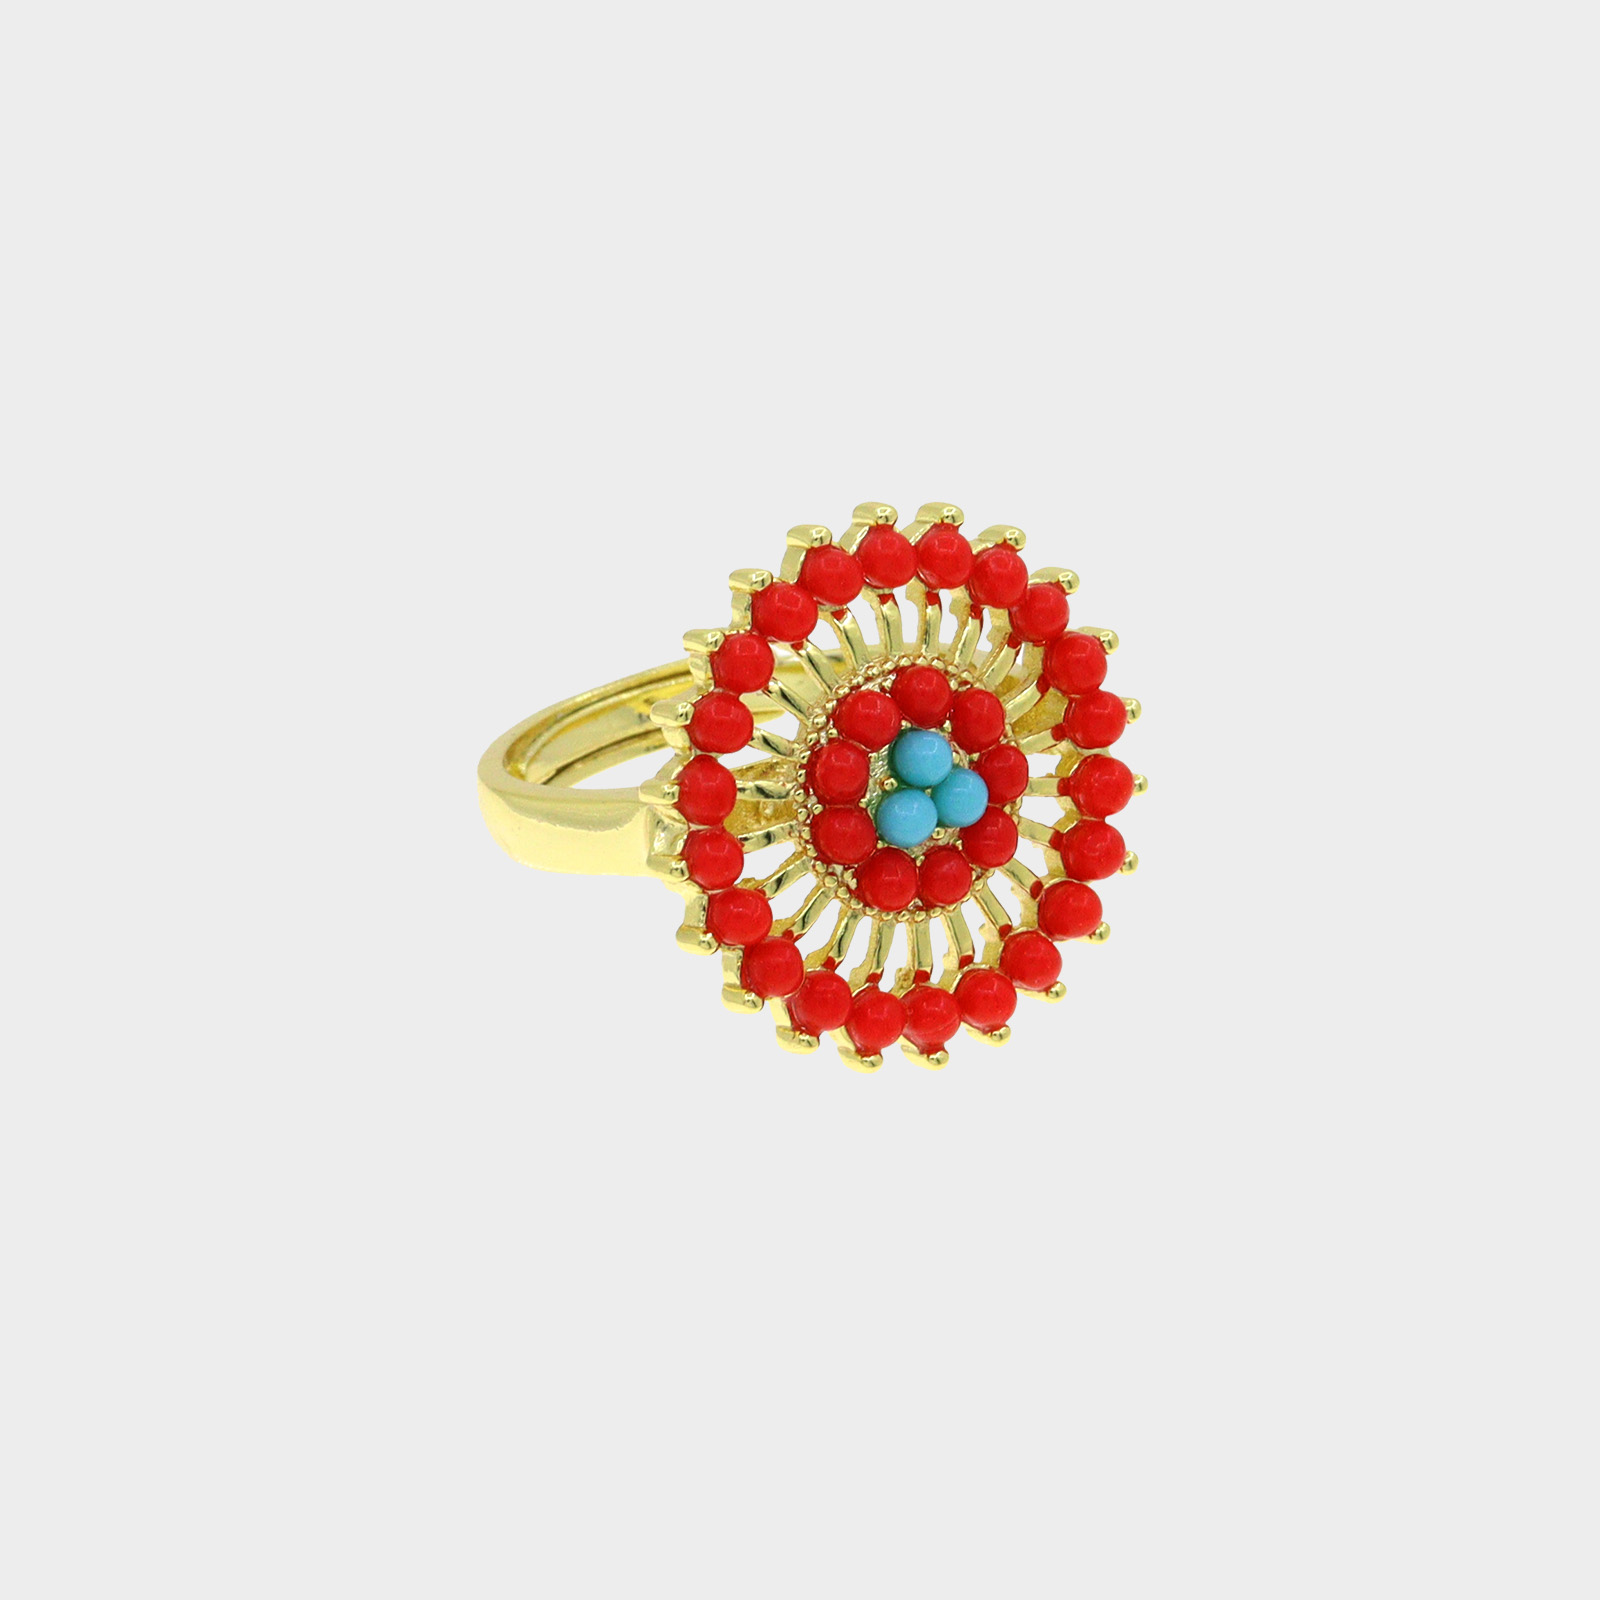 The Ring Amazon Flower Red